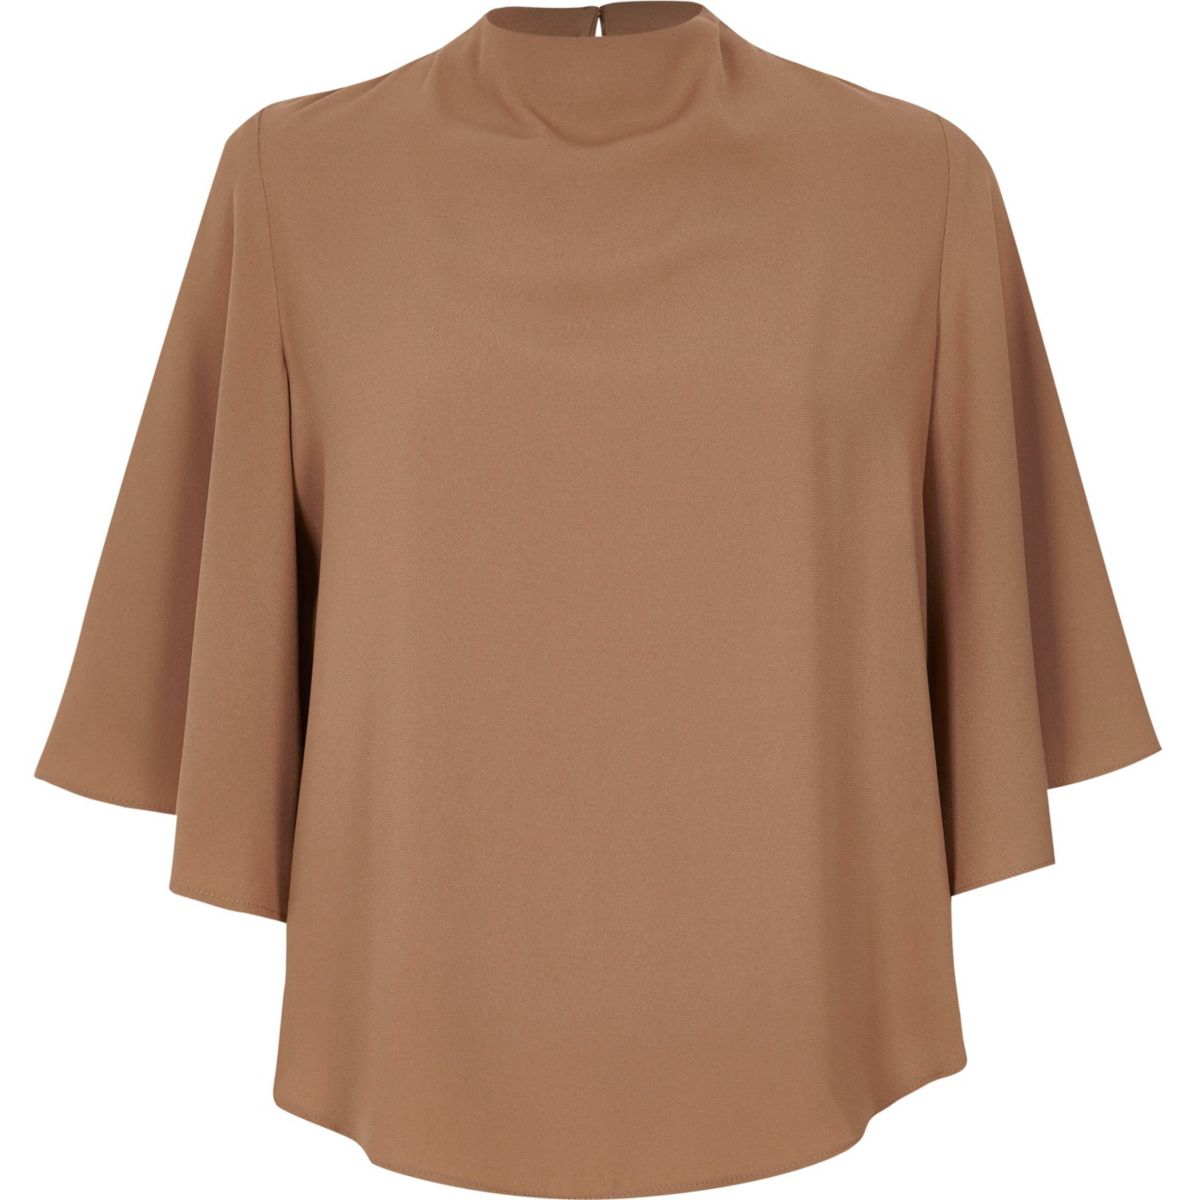 Light brown cape top